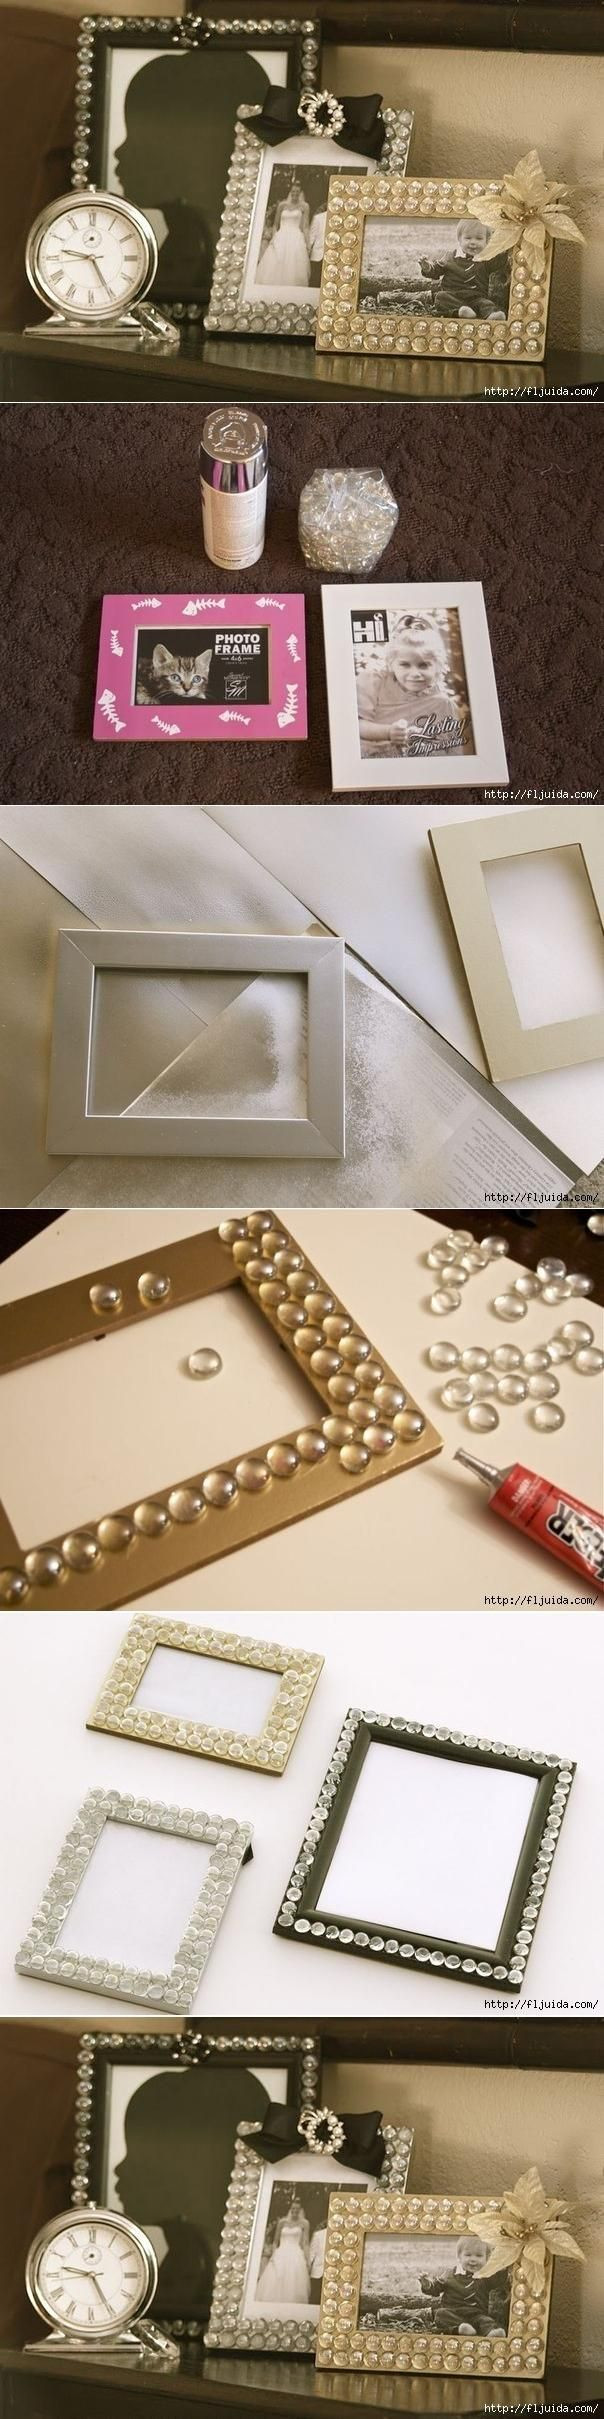 clear mini discs vase filler of 28 best craft ideas images on pinterest craft good ideas and throughout diy glamorous picture frame with glass gems from the dollar tree store christmas or mothers